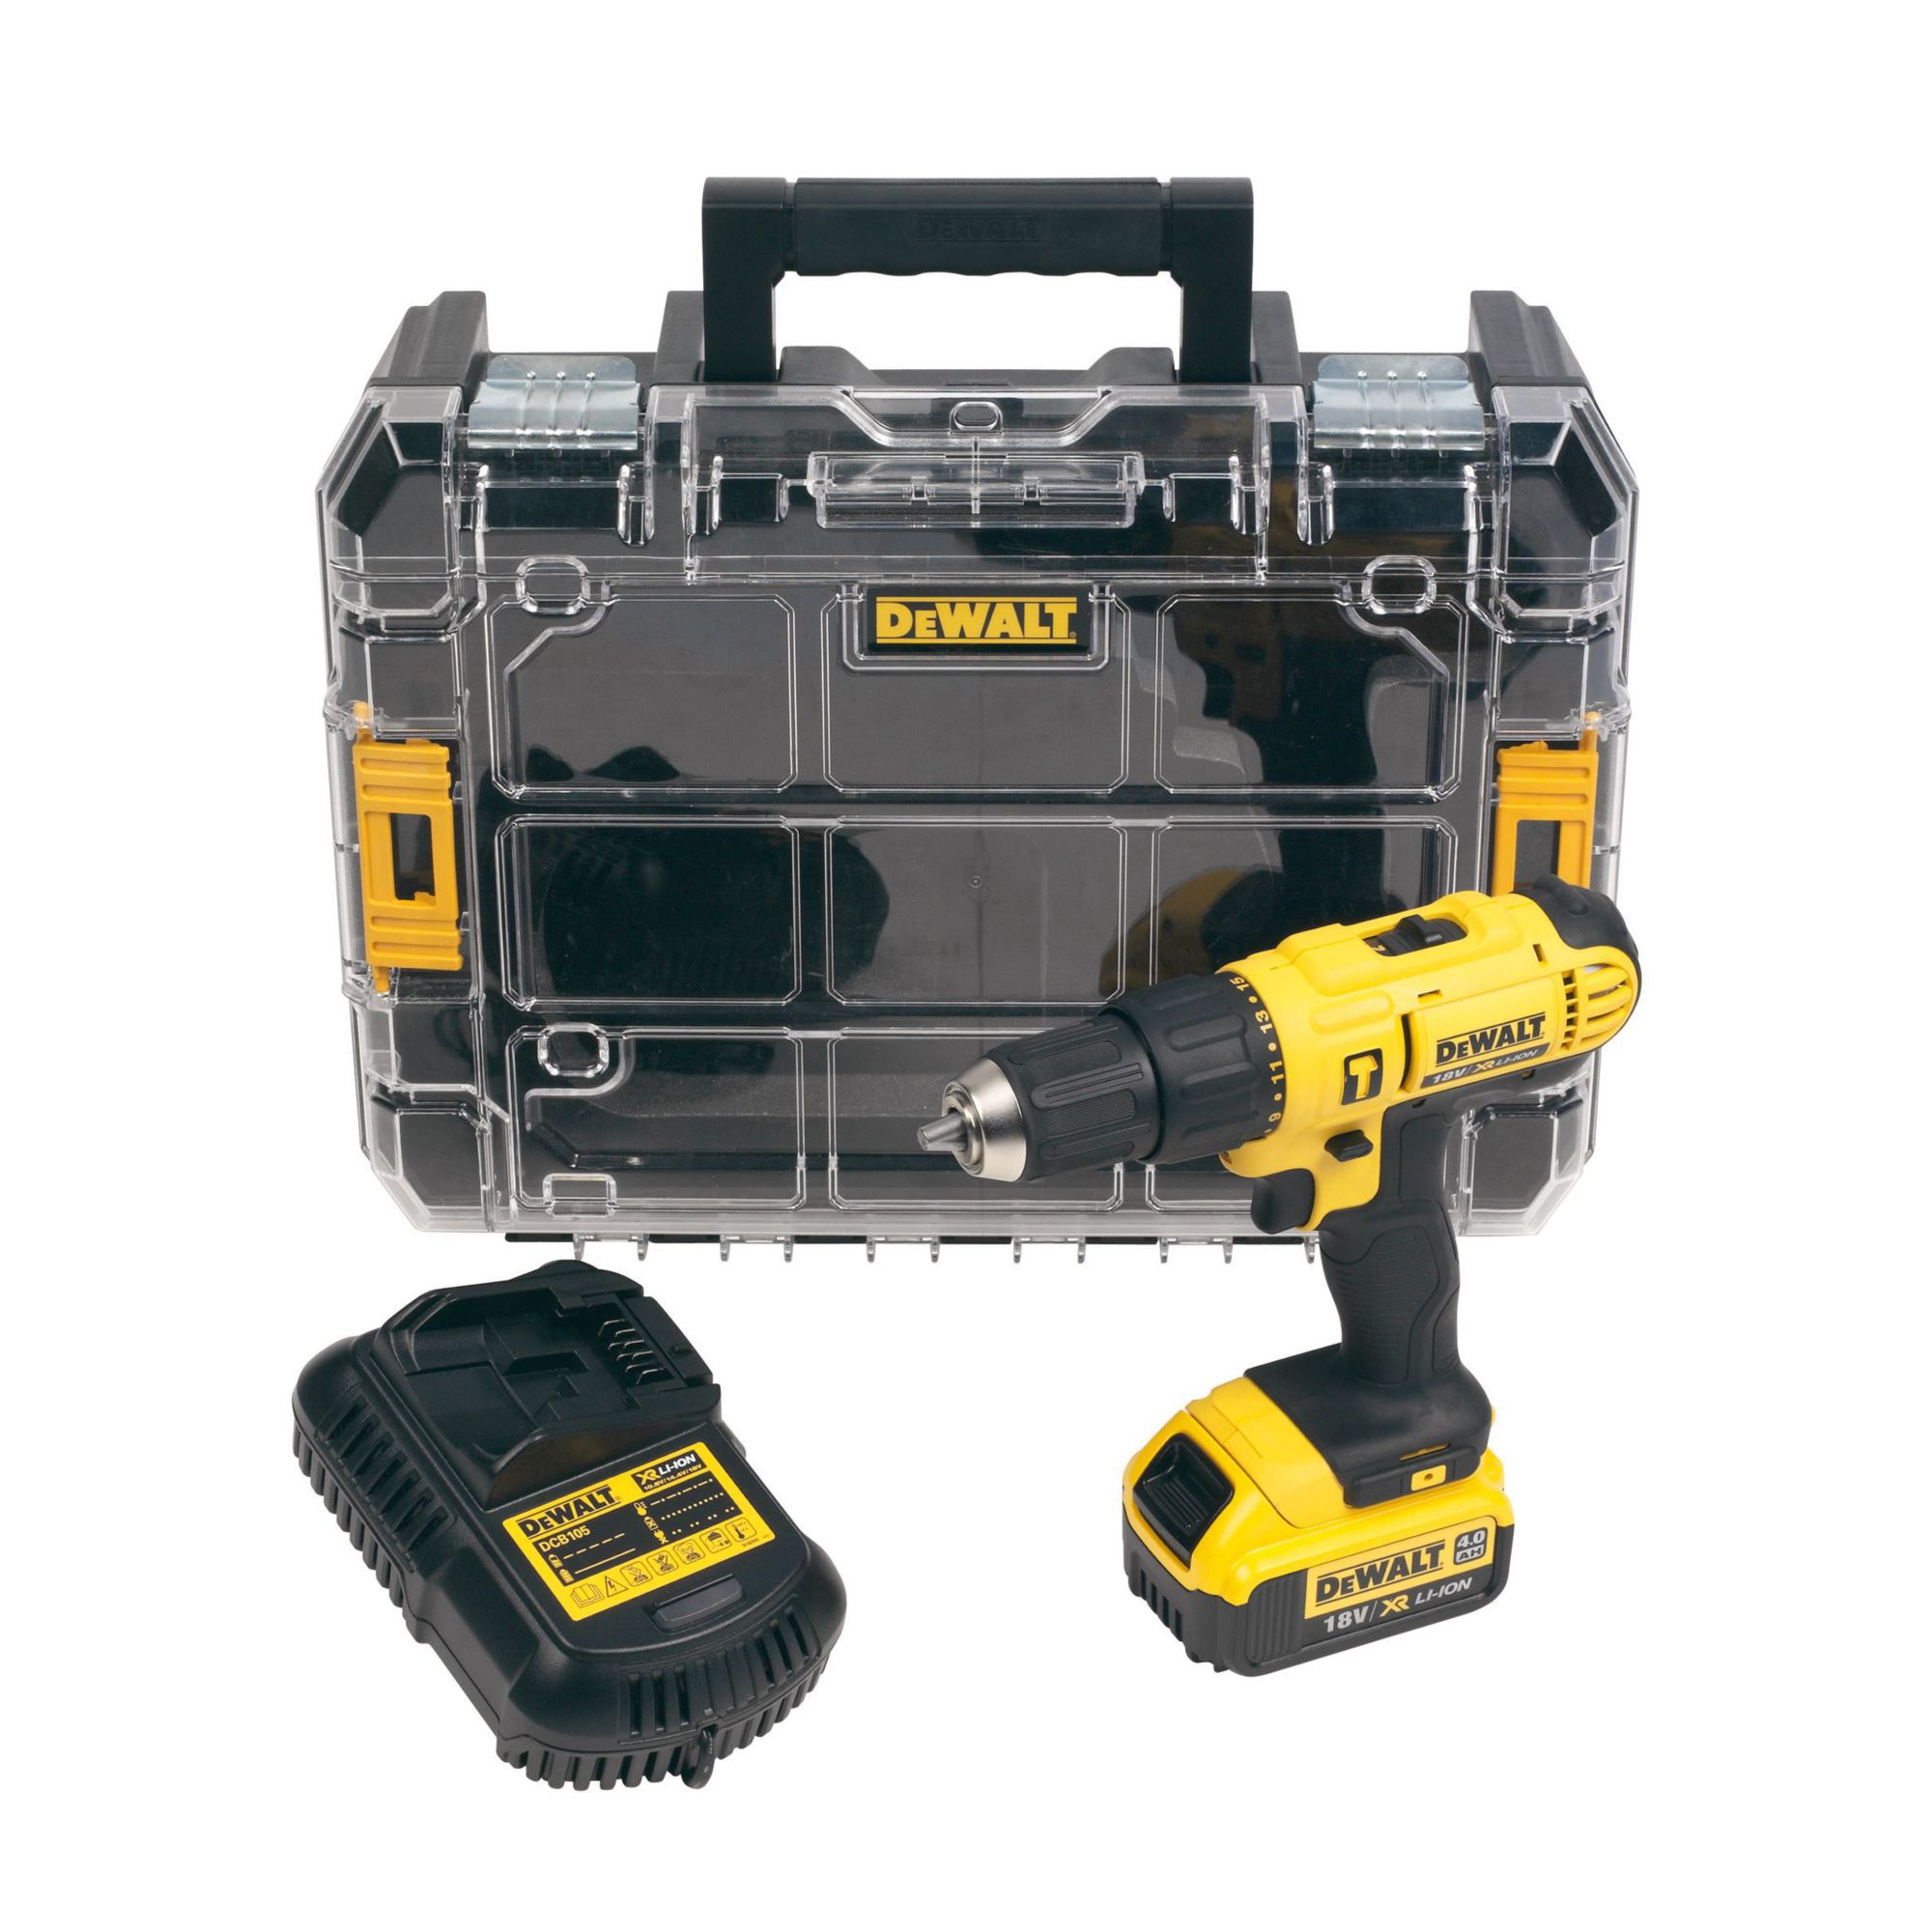 Dewalt Cordless 18v 4ah Li Ion Combi Drill 1 Battery Dcd776m1t Gb Departments Tradepoint